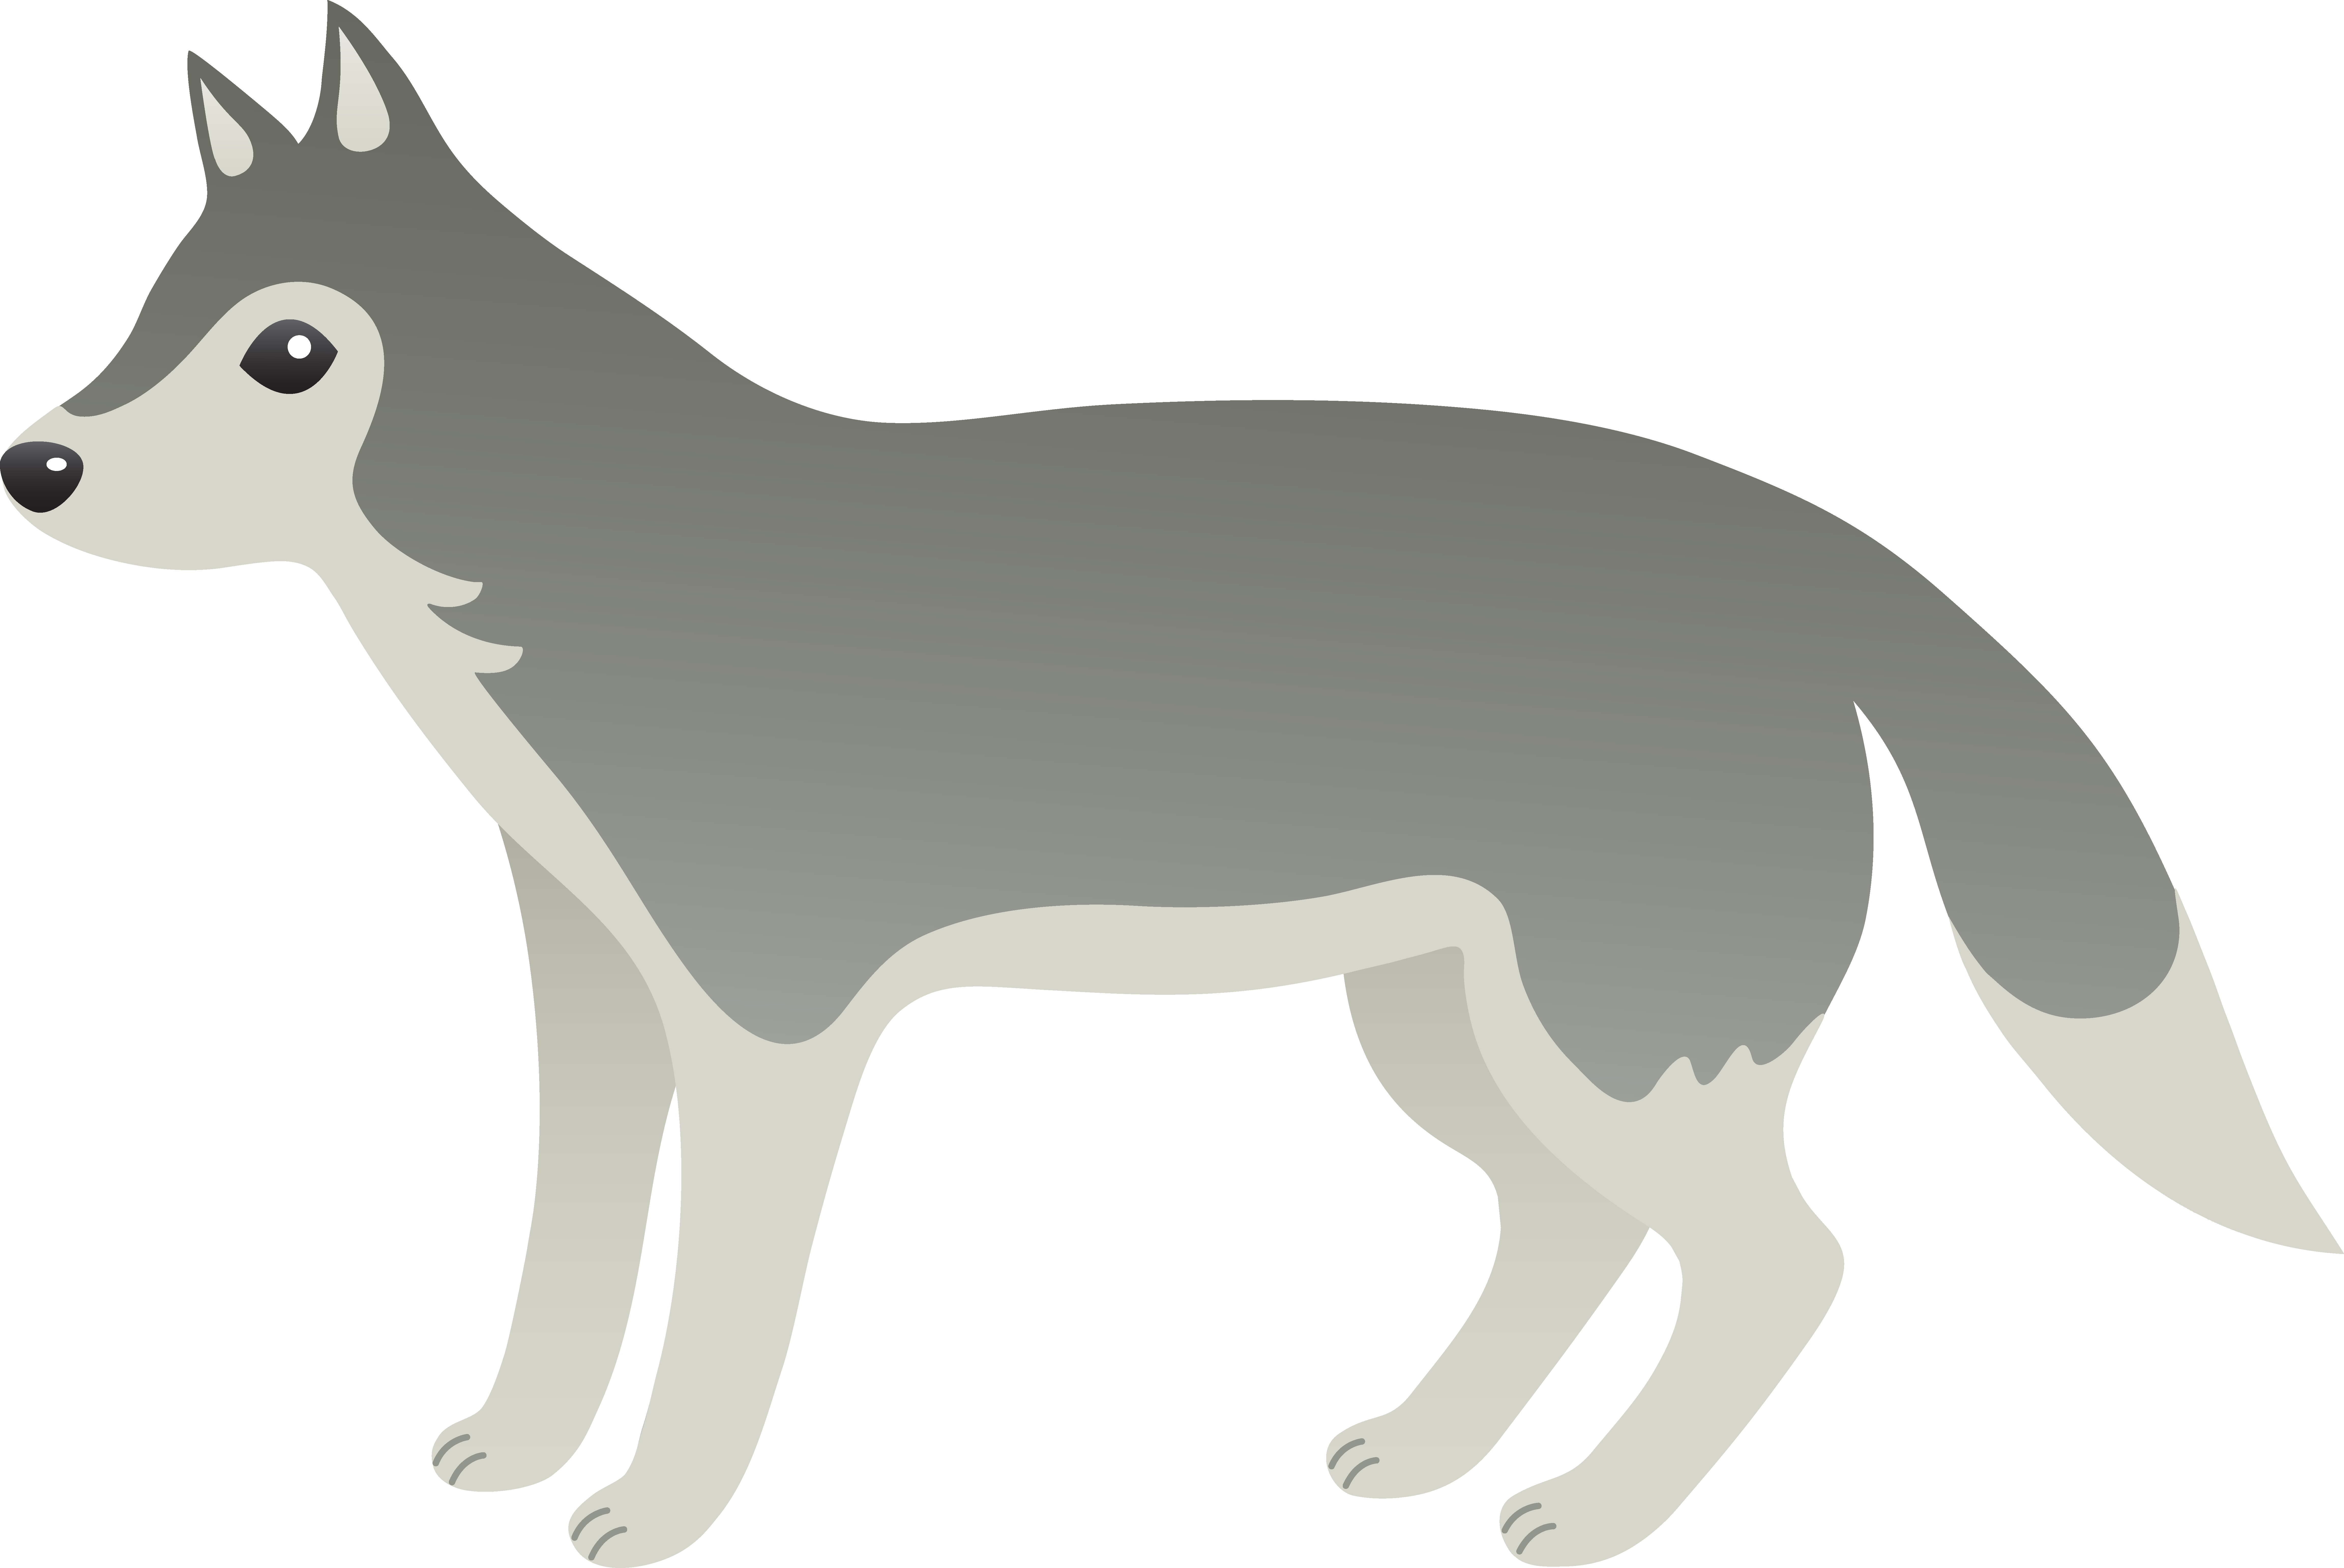 Wolves Cartoon Wolf Clipart Free Downloa-Wolves cartoon wolf clipart free download clip art on-11